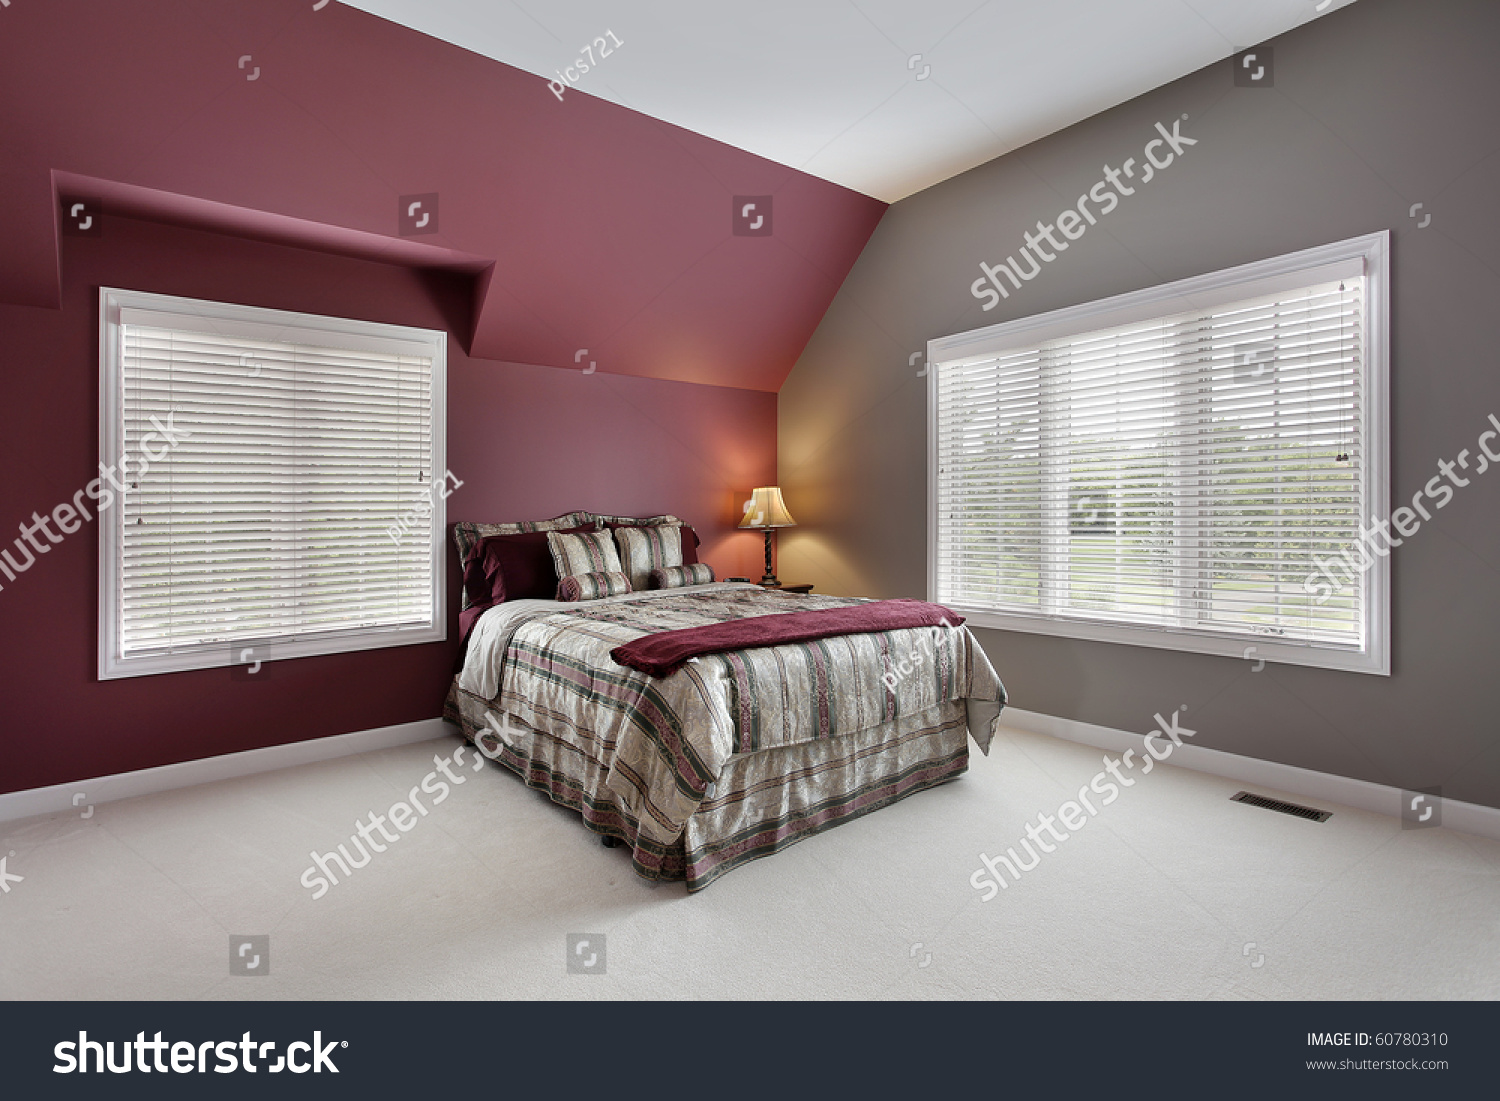 Burgundy And Gray Bedroom Large Bedroom Maroon Gray Walls Stock Photo 60780310